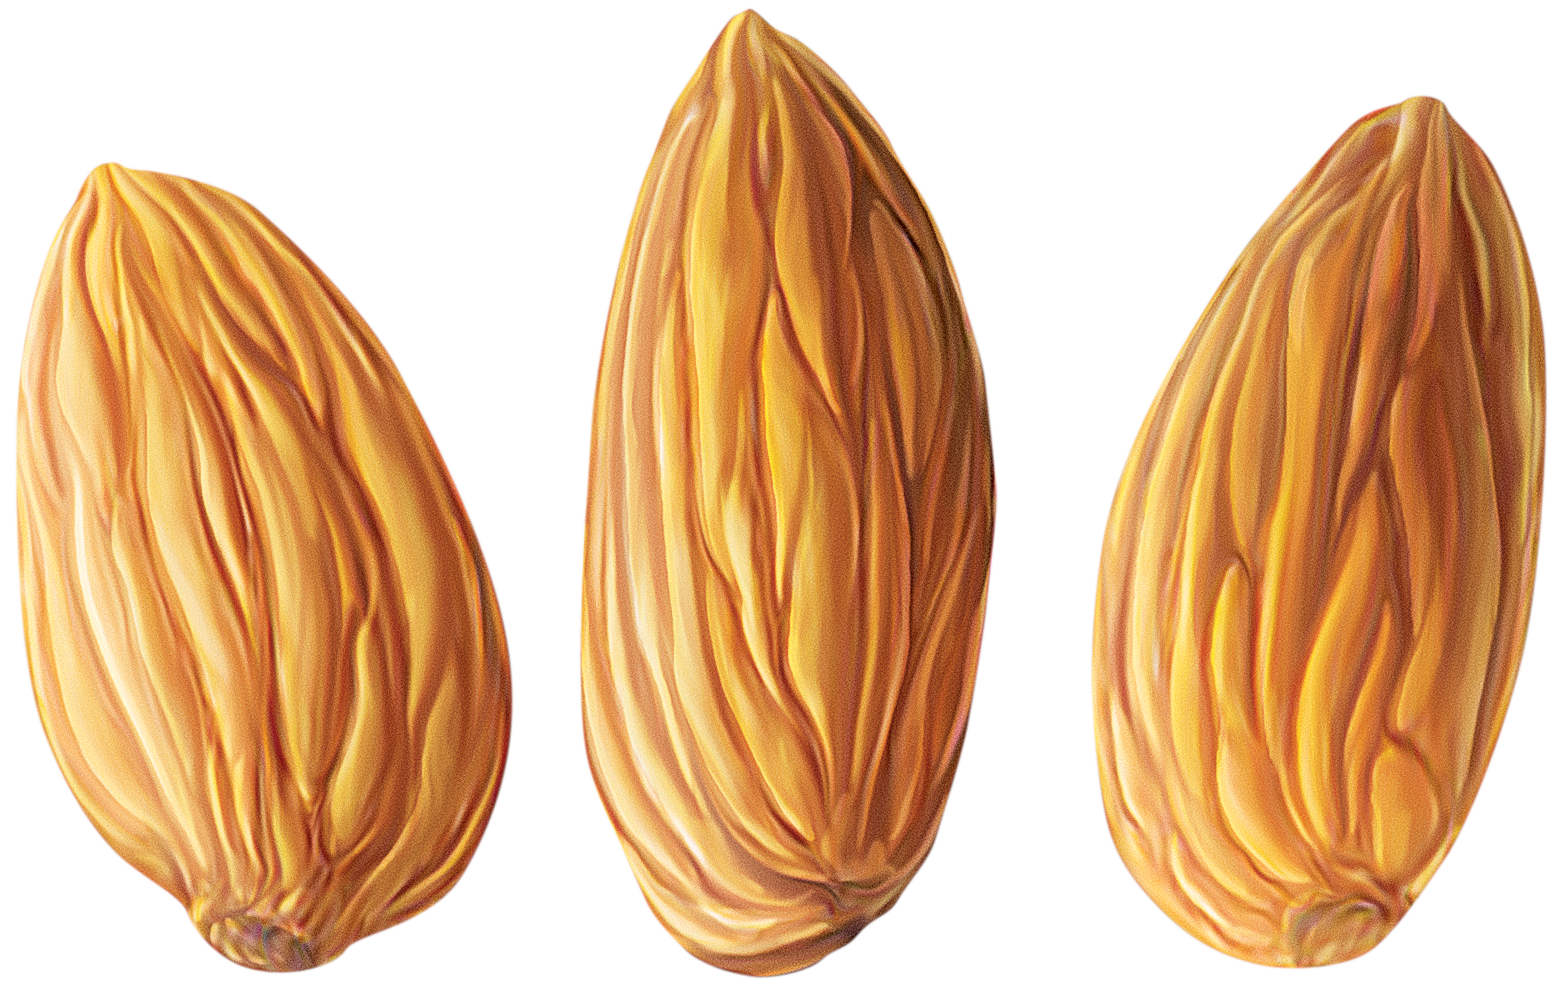 Almond clipart vector Nut #32801 Free #32799 png